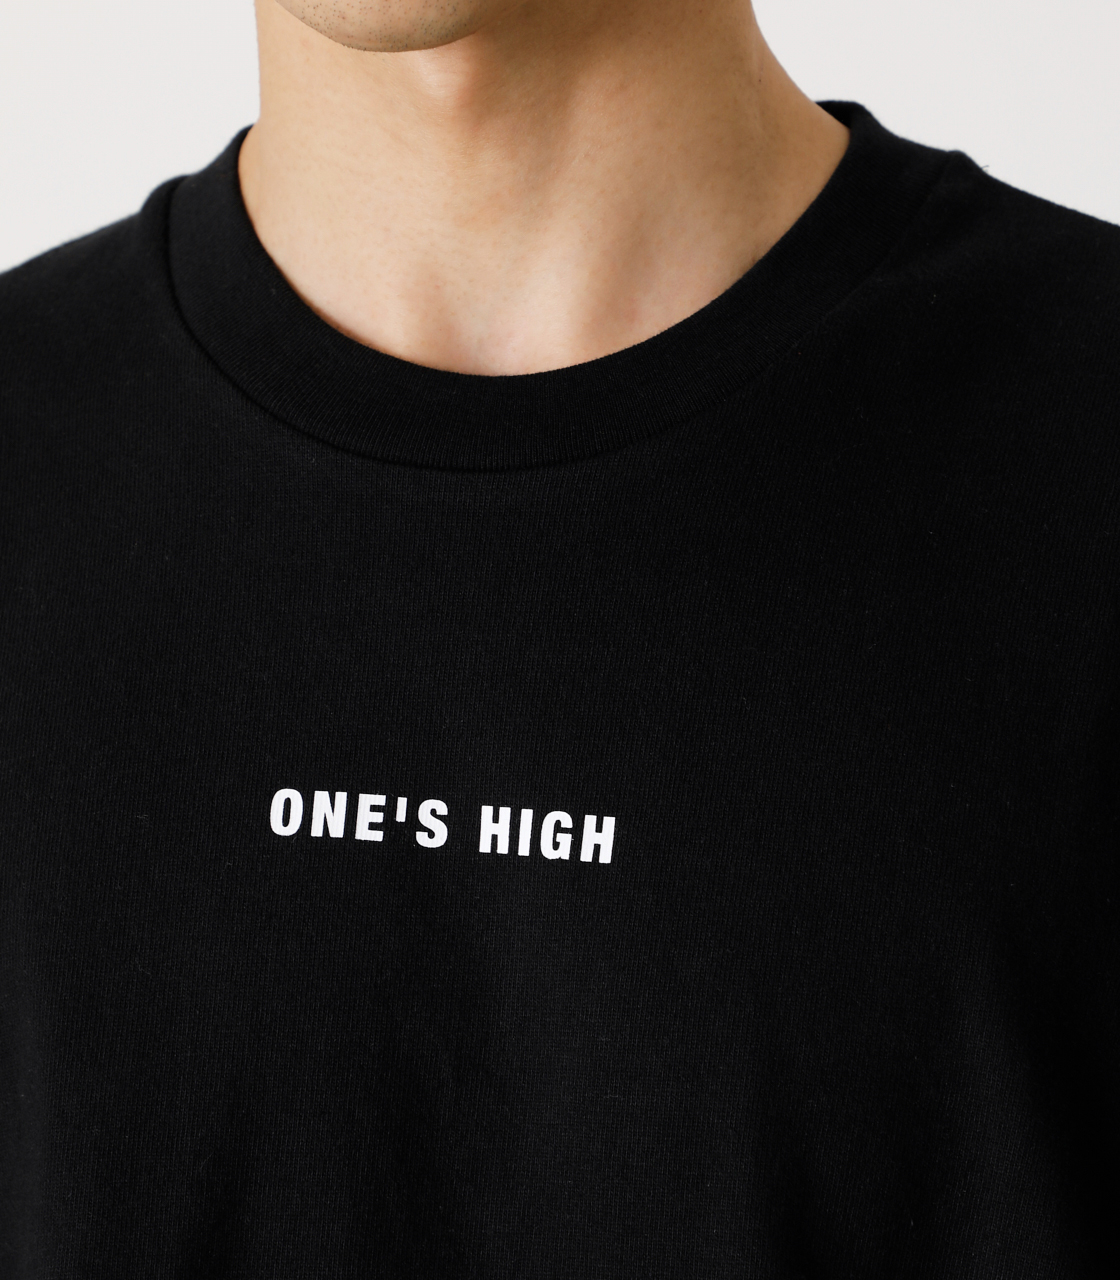 ONE'S HIGH LONG TEE/ワンズハイロングTシャツ 詳細画像 BLK 9